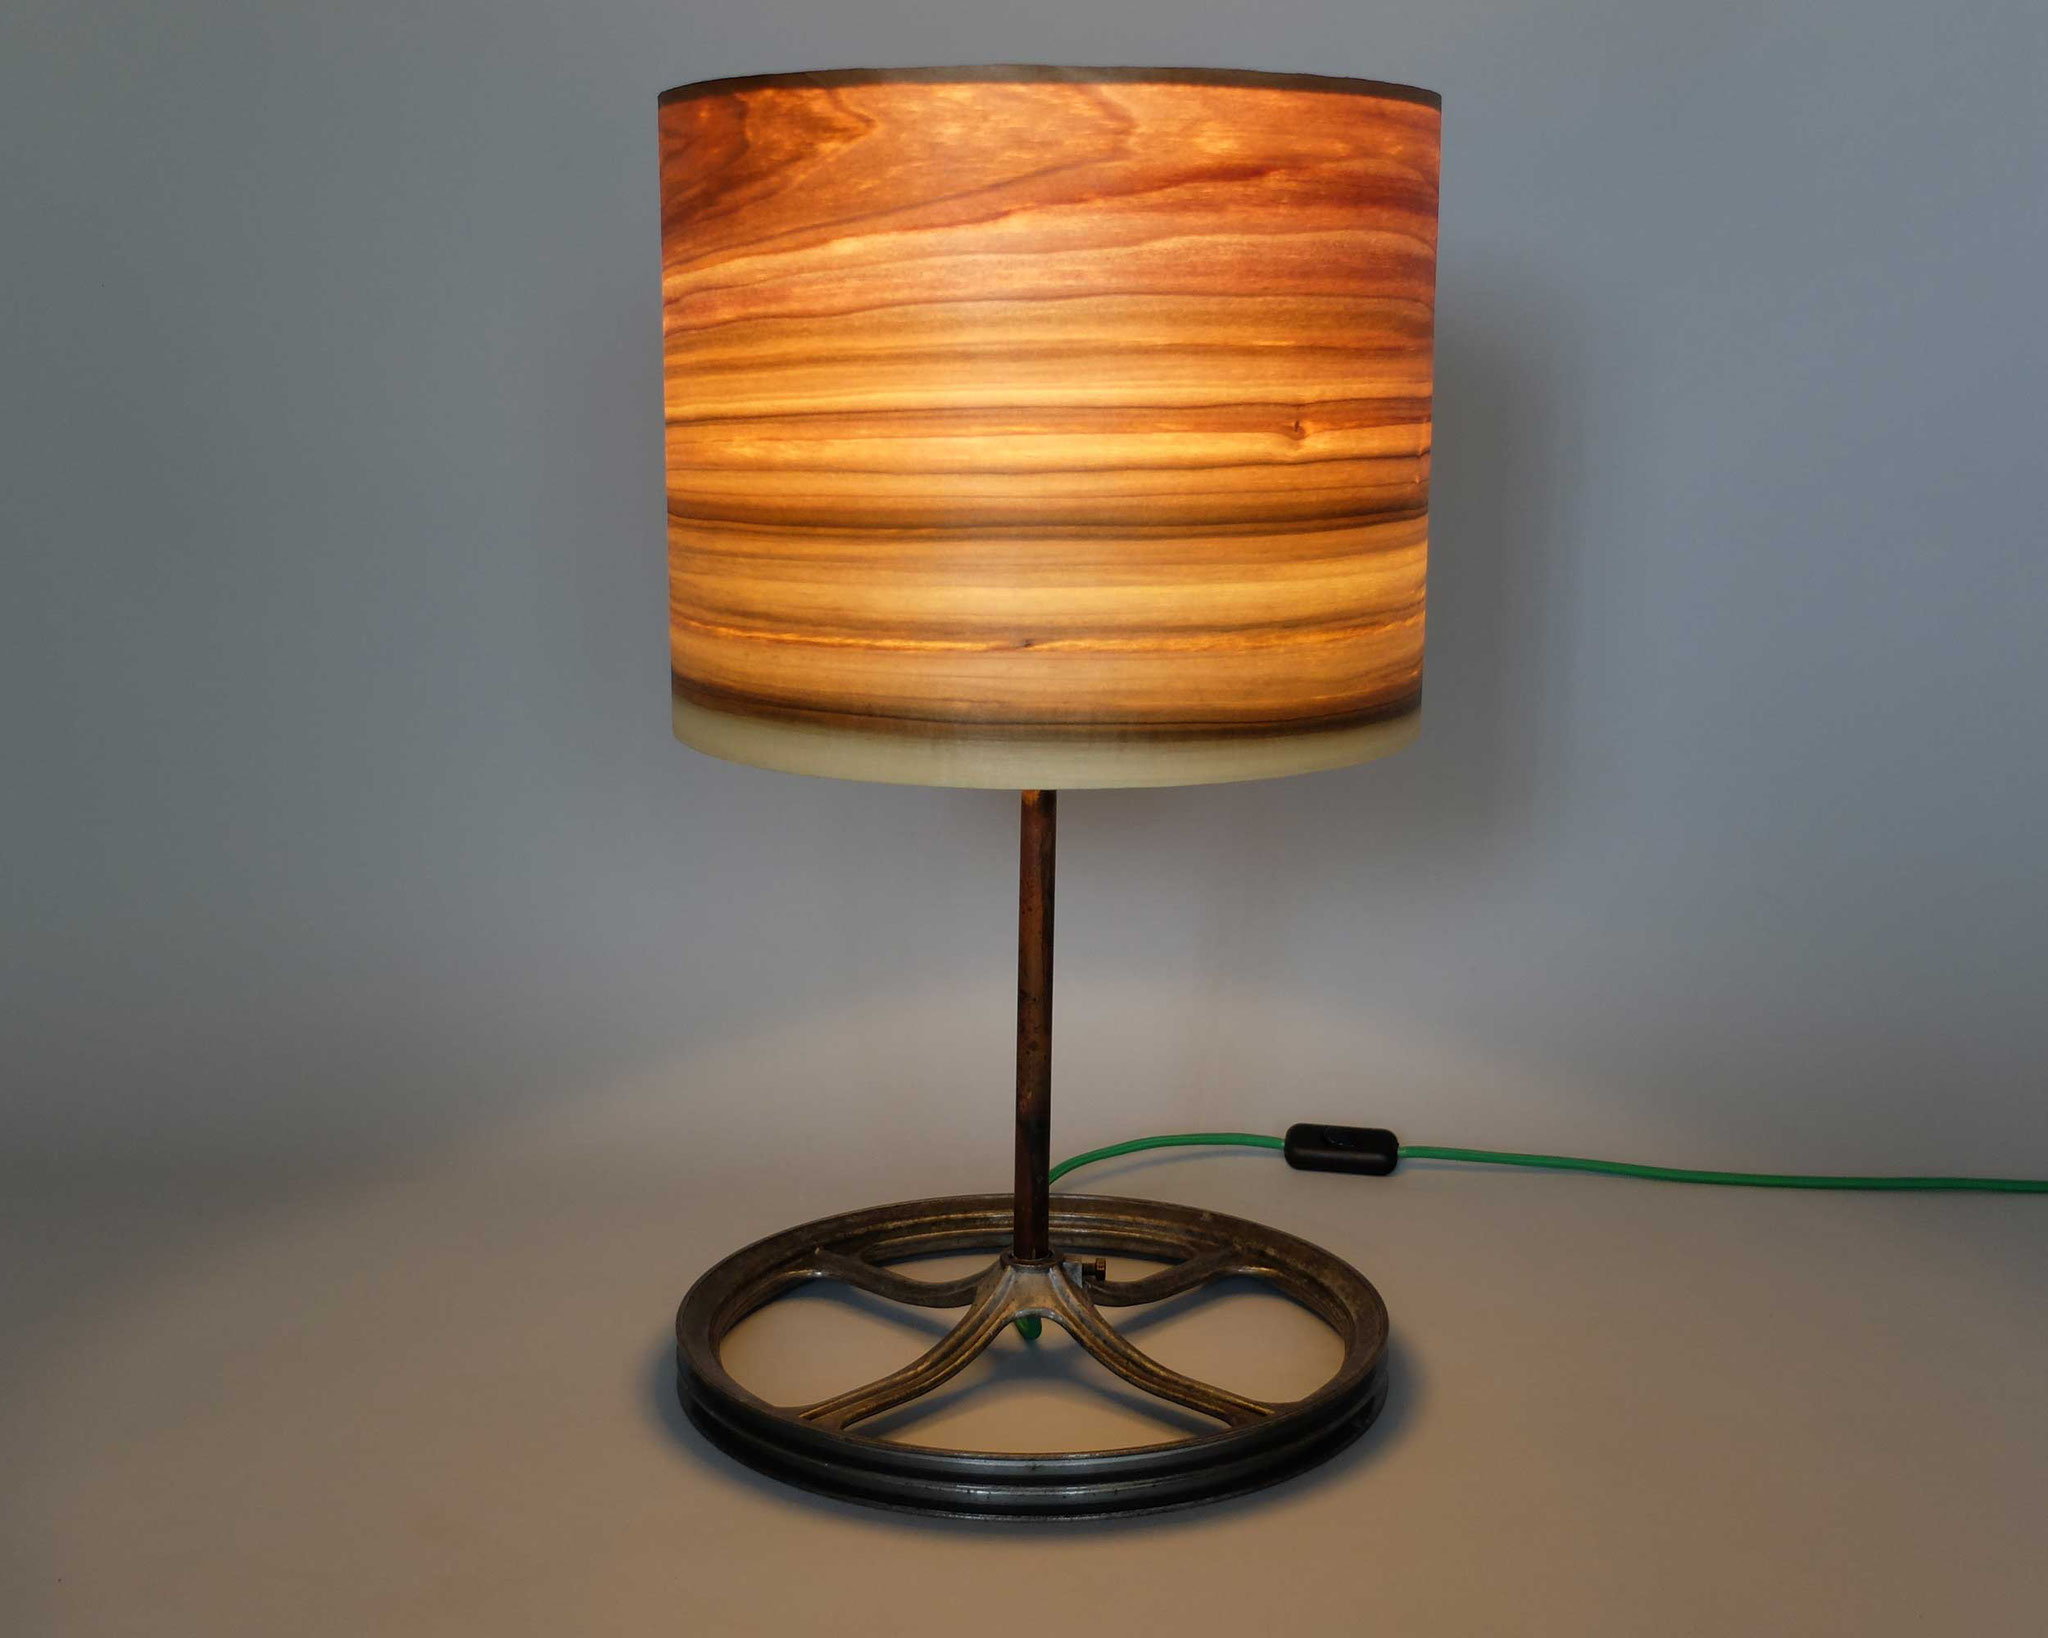 Upcycling Tischlampe Calix